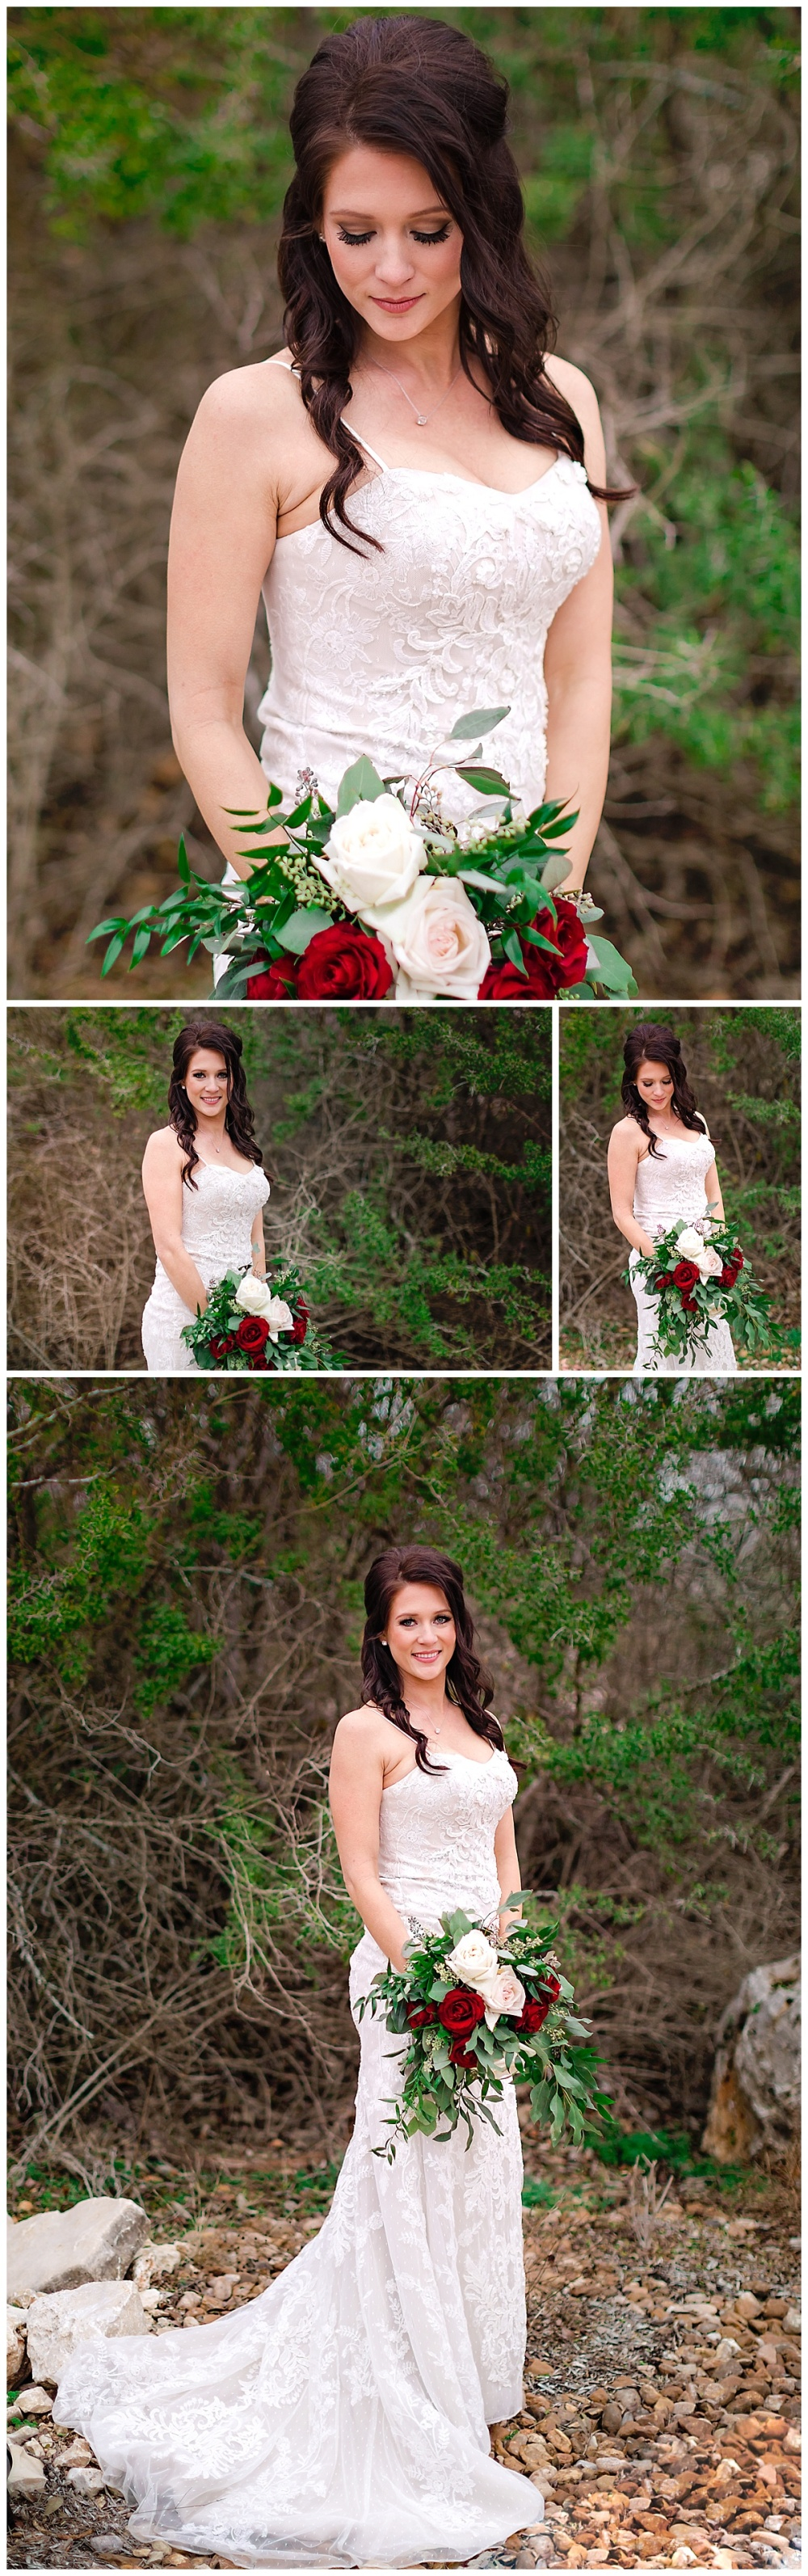 Carly-Barton-Photography-Geronimo-Oaks-Wedding-Venue-Texas-Hill-Country-Ronnie-Sarah_0071.jpg